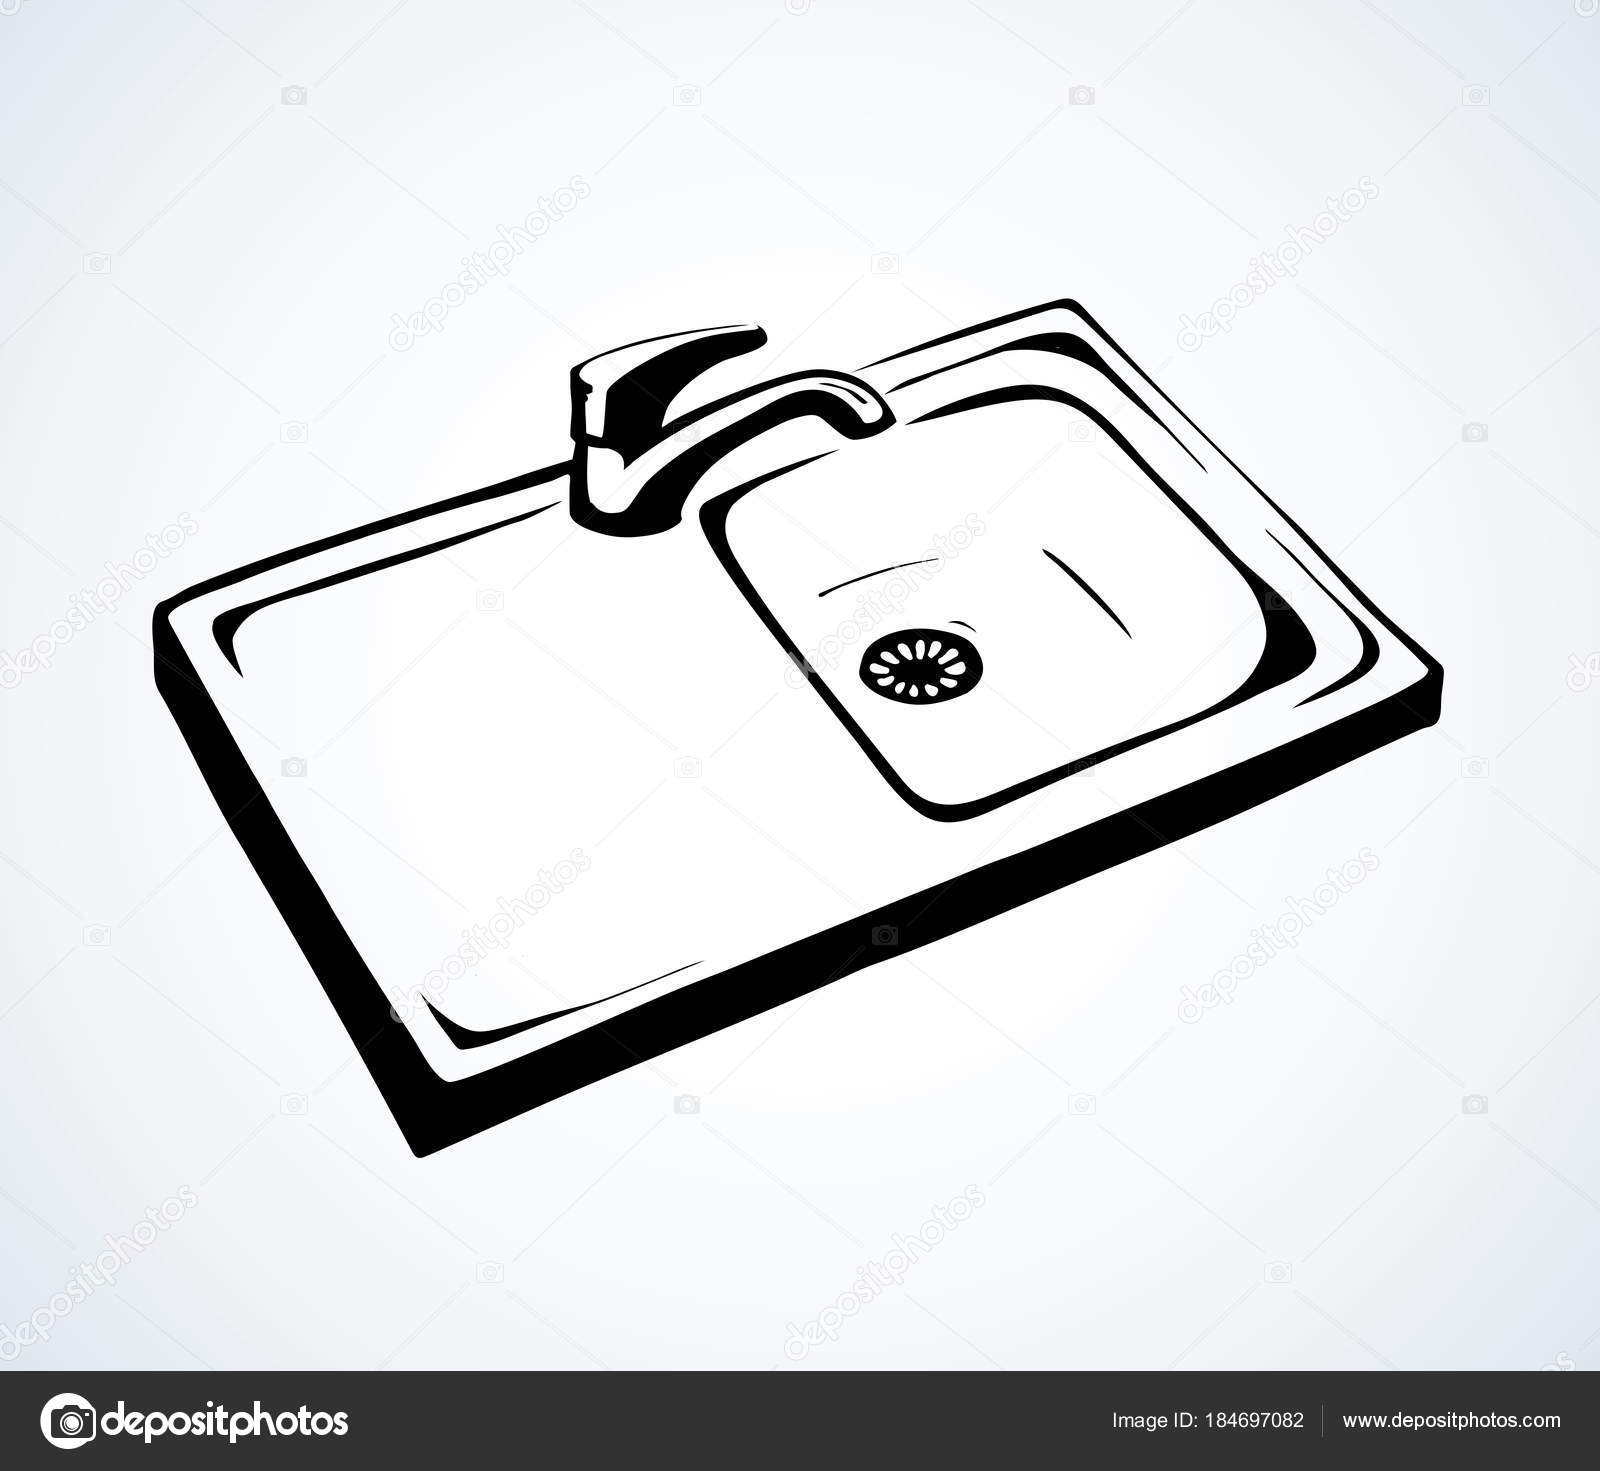 Kitchen Sink Drawing: Kitchen Sink. Vector Drawing